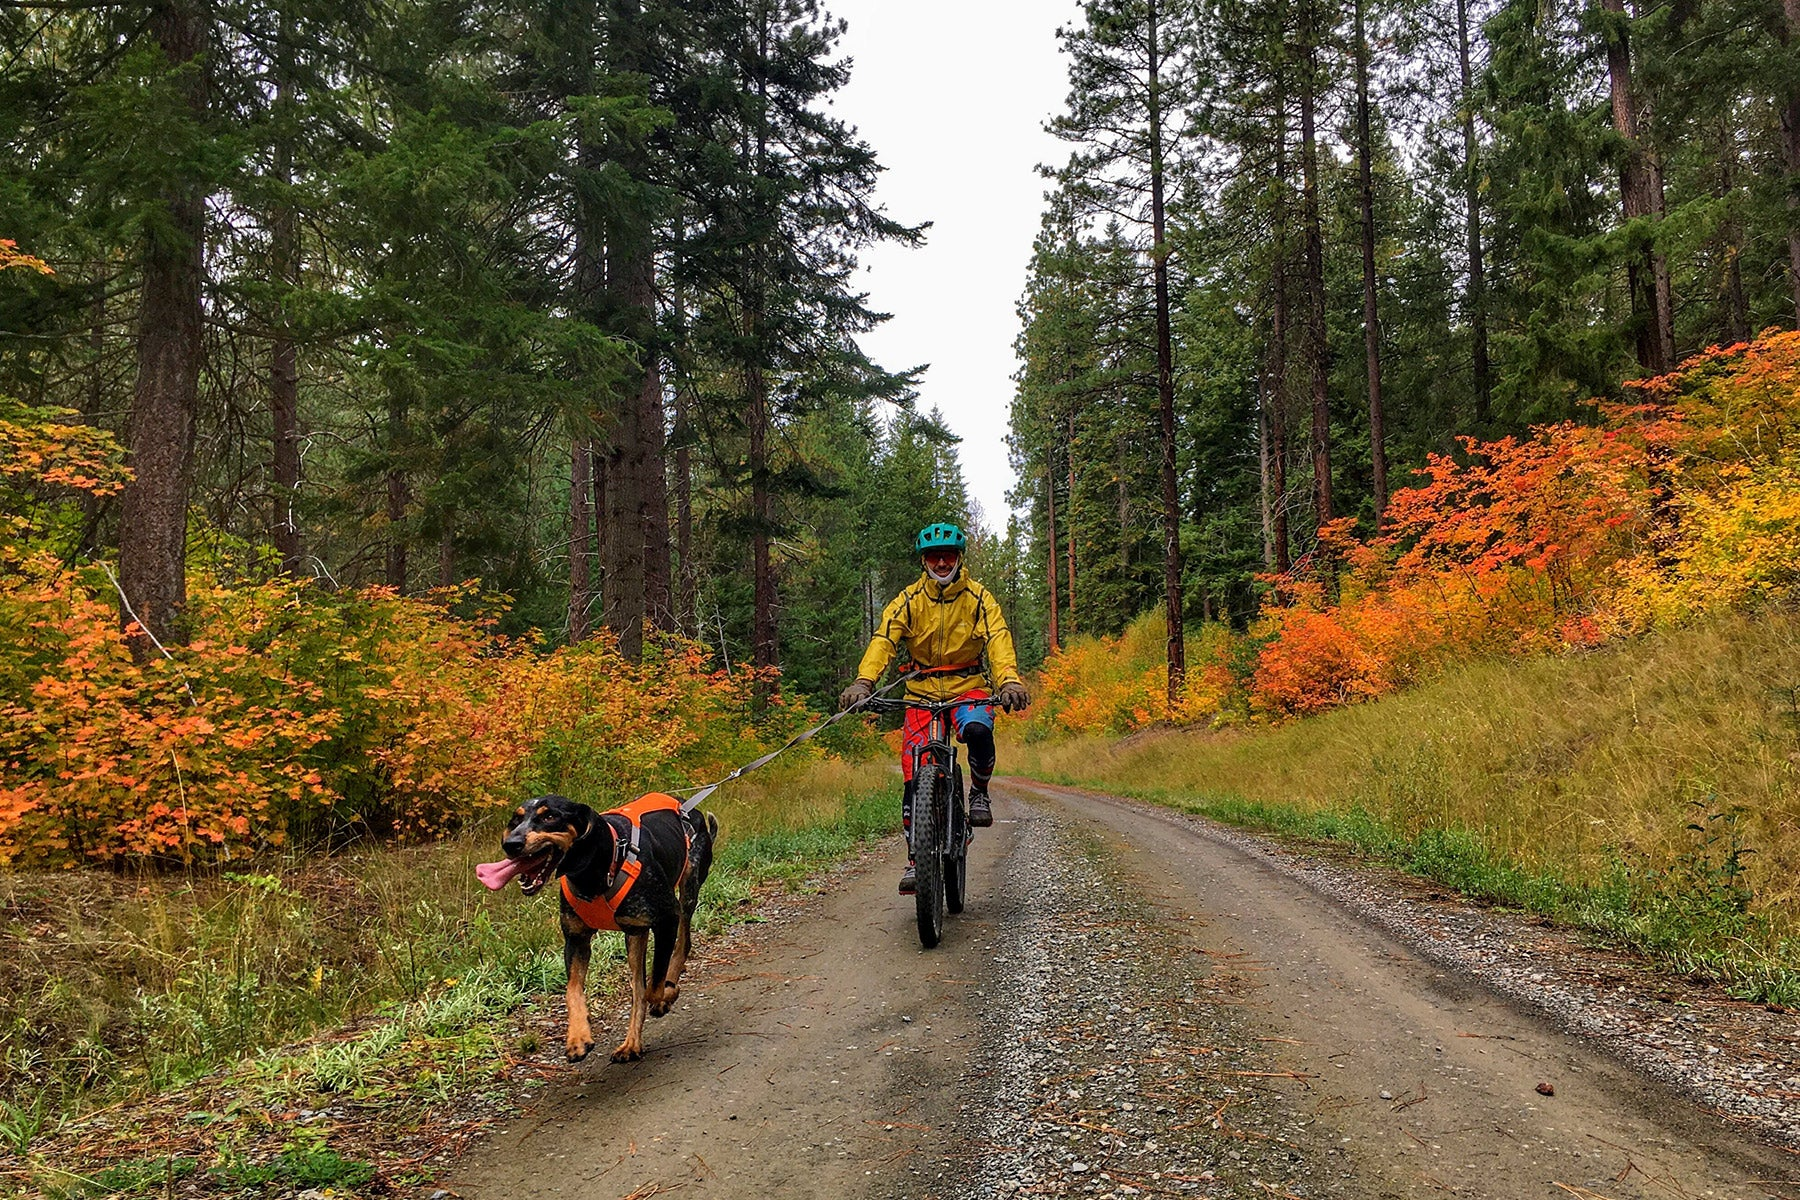 Human bike-joring with dog on a dirt road with autumn foliage